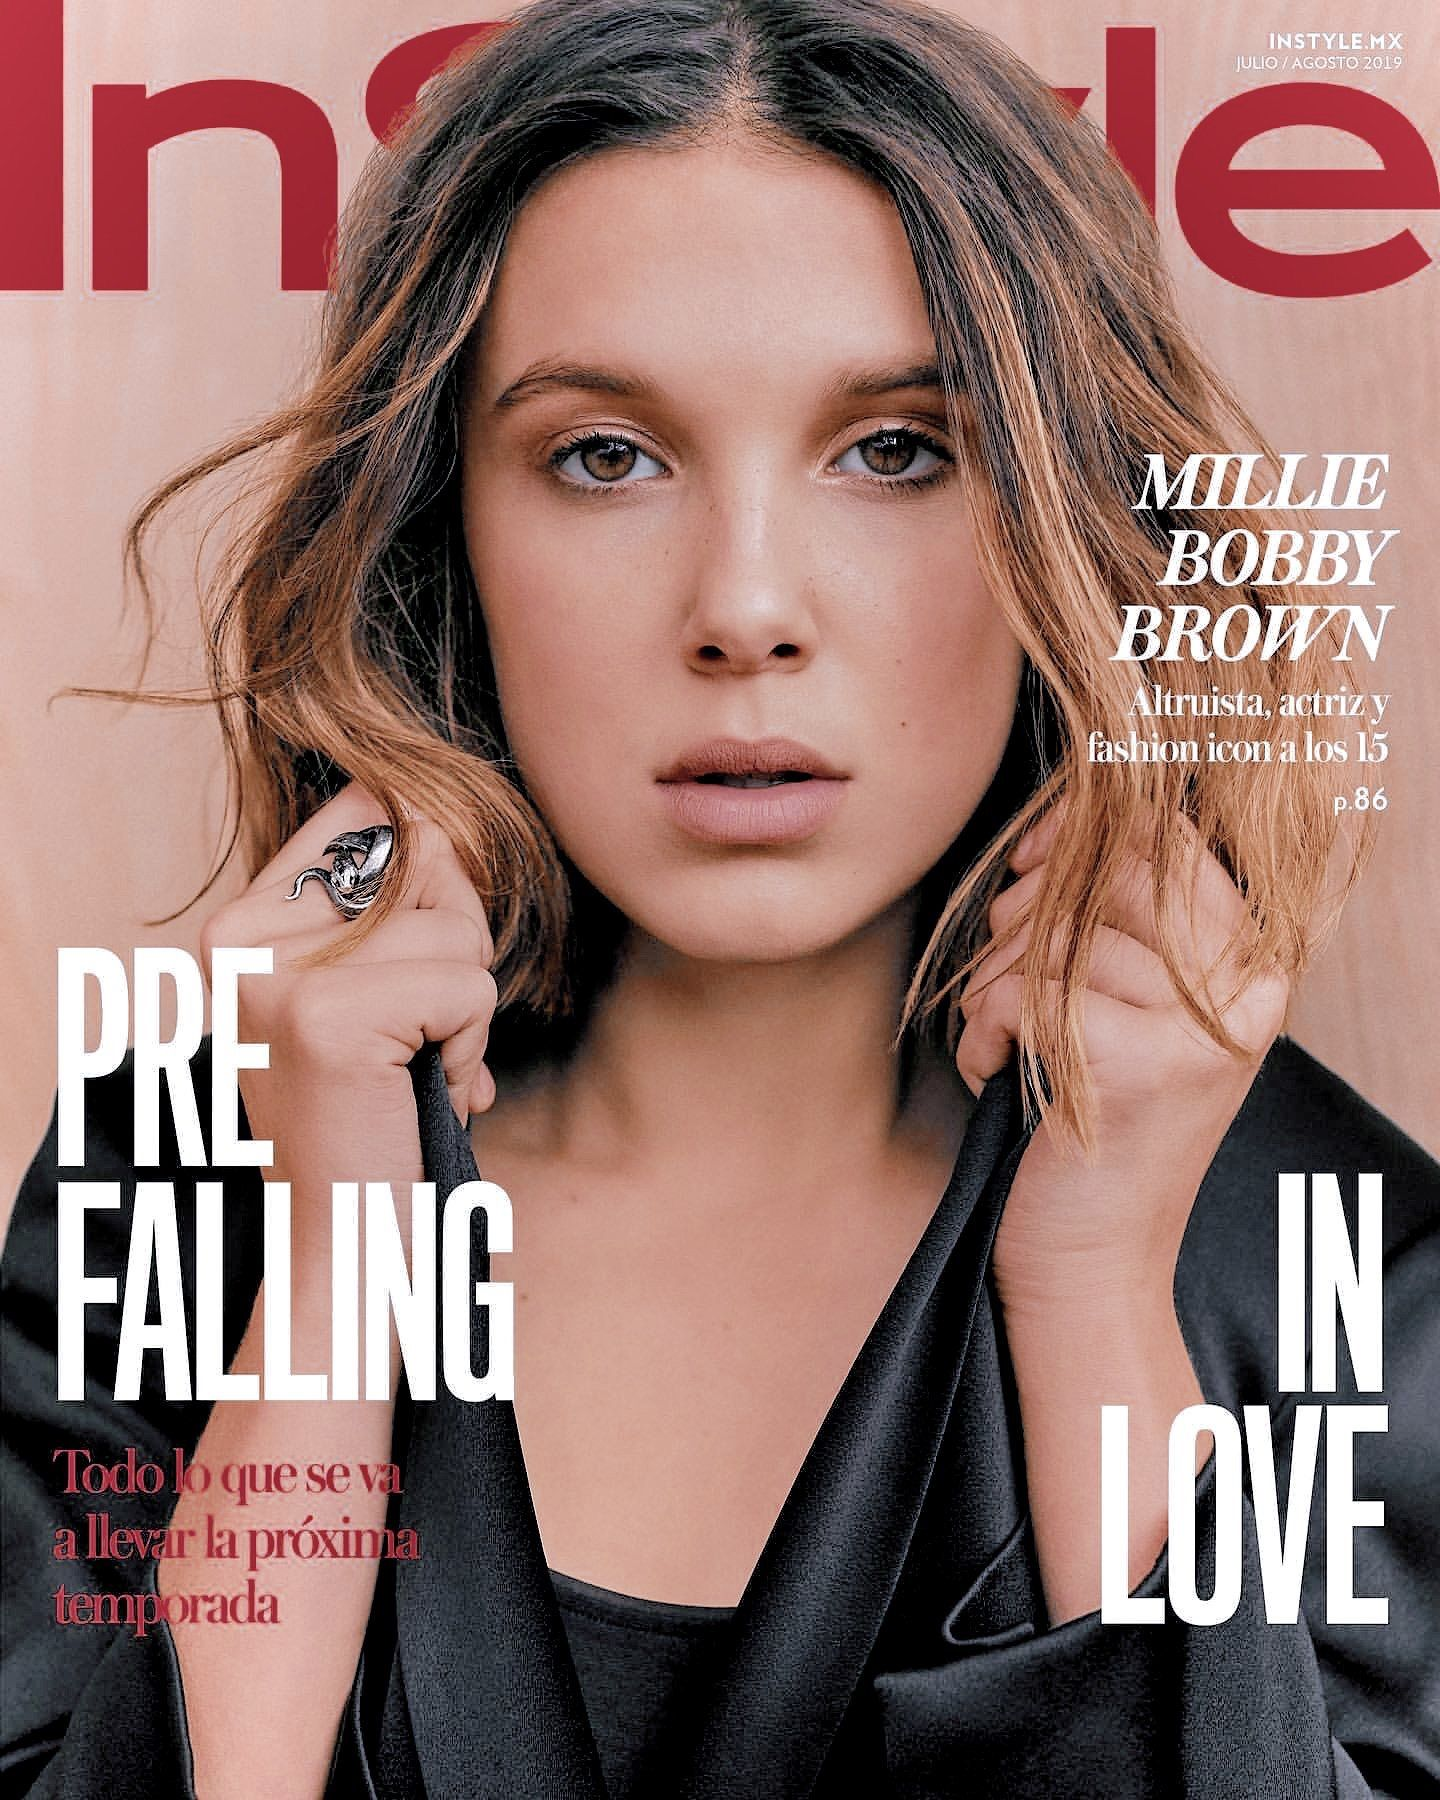 Pin By Reimy On Millie Bobby Brown In 2020 Bobby Brown Millie Bobby Brown Bobby Brown Stranger Things